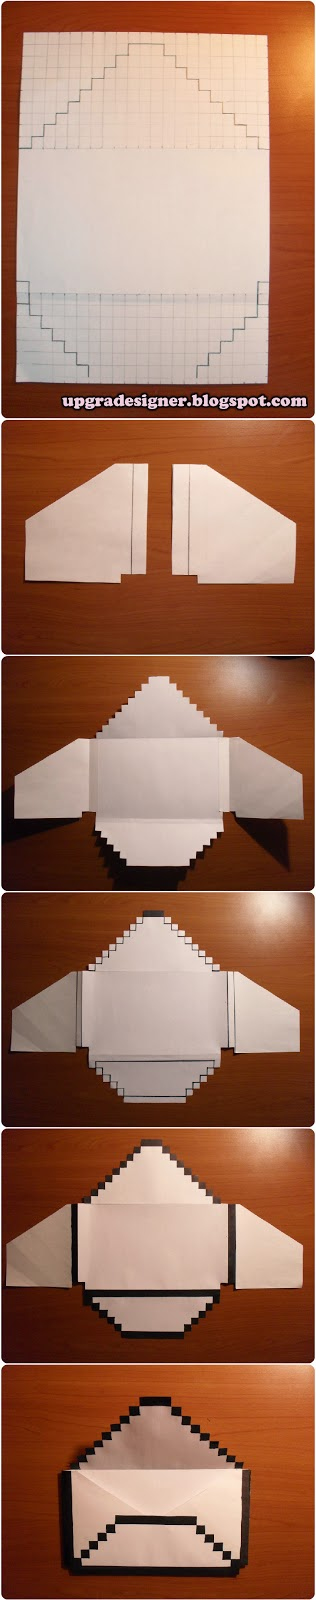 pixel envelope design diy